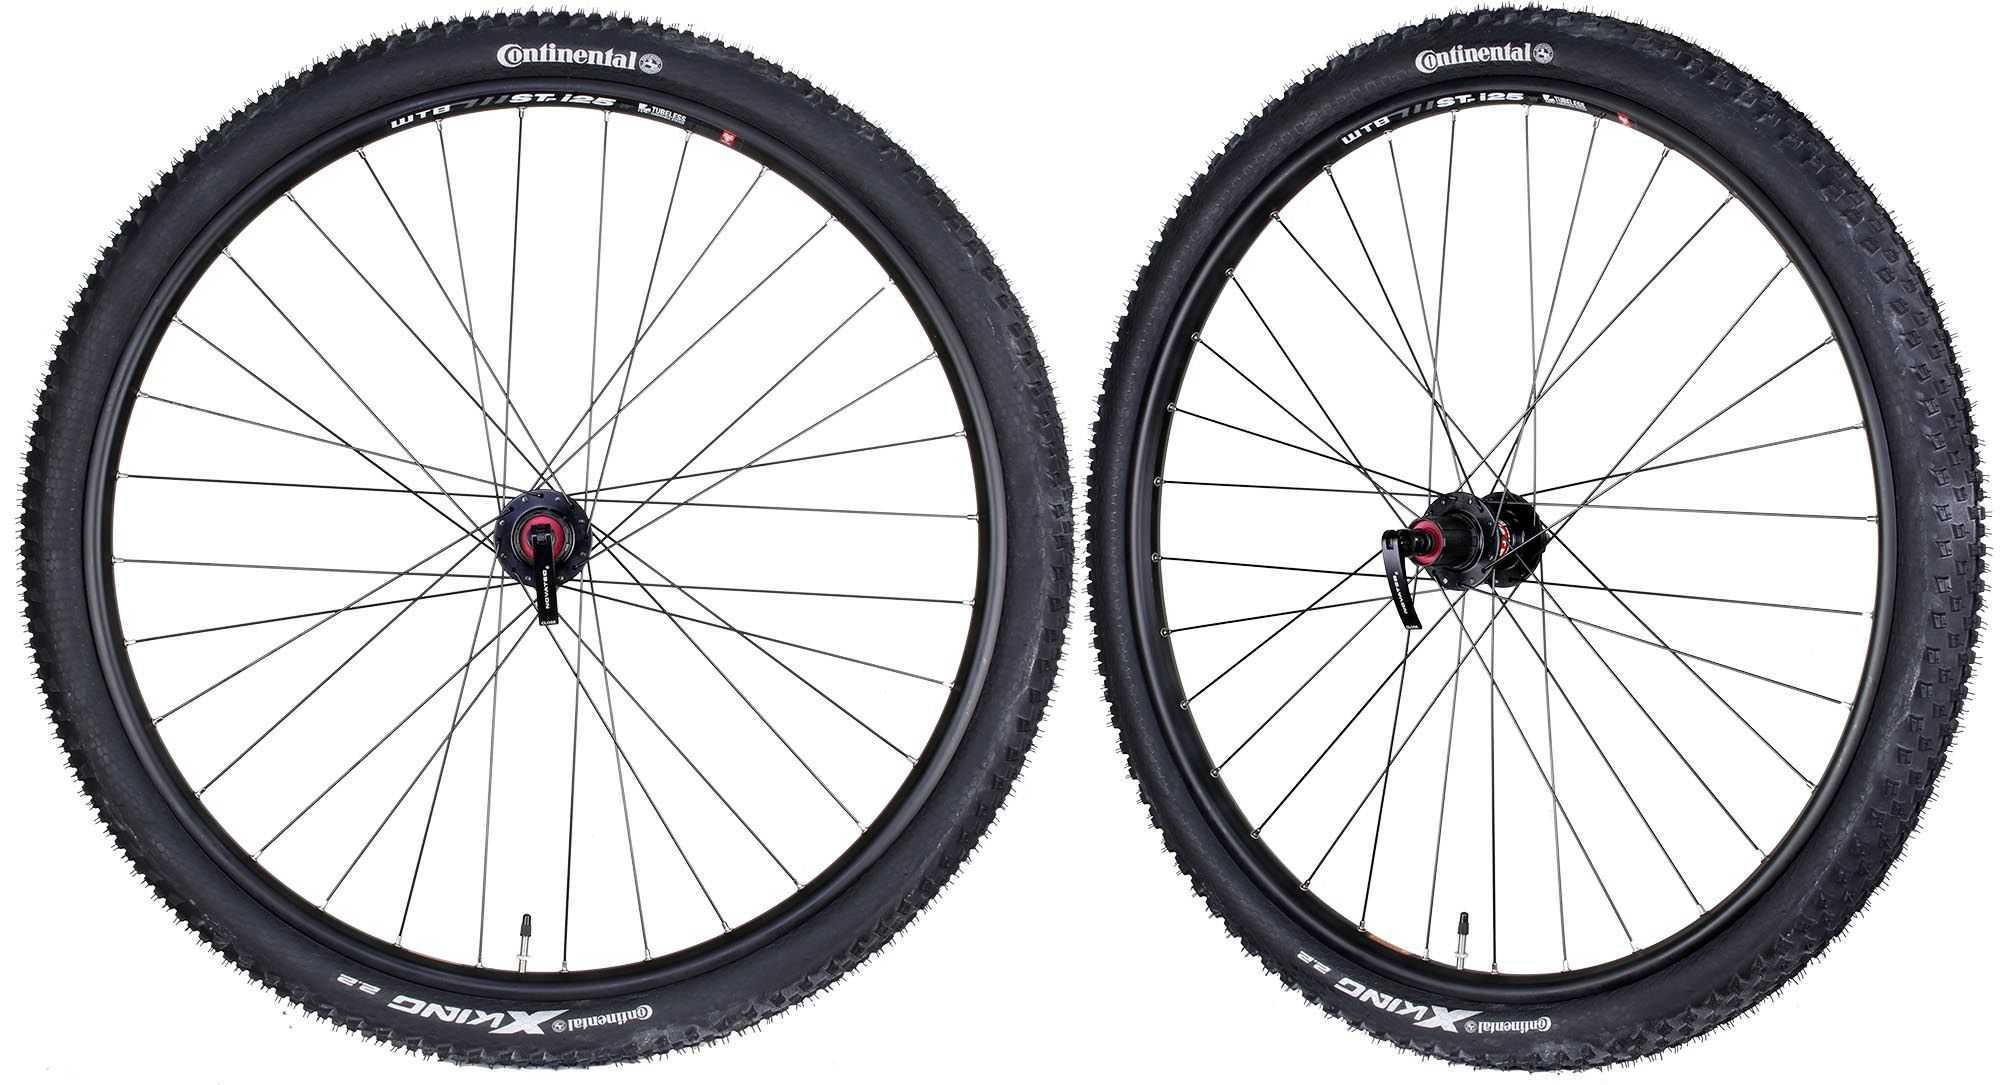 WTB STP i25 Tubeless Ready Mountain Bike Bicycle Novatec Hubs & Tires Wheelset 11s 29""